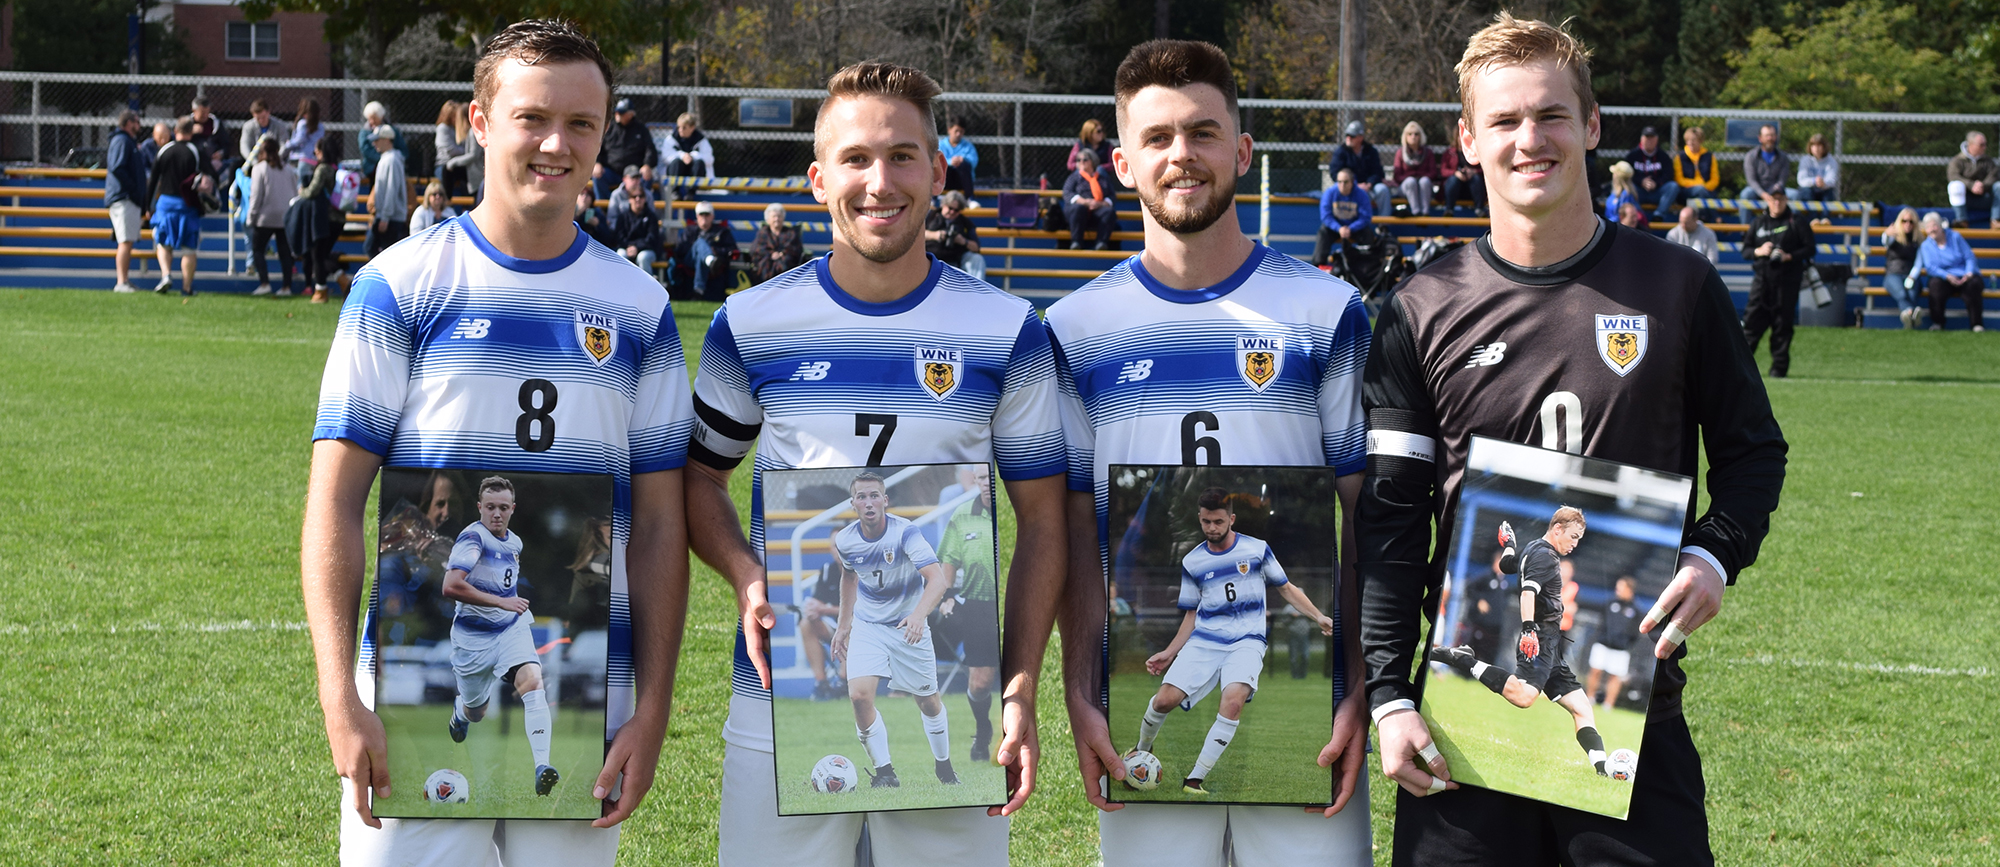 Western New England honored seniors (from left) Josh Loomis, Nick Liccardi, Brendan Siegel & Sam Brewer before the Golden Bears defeated UNE 5-0 on Saturday. (Photo by Rachael Margossian)